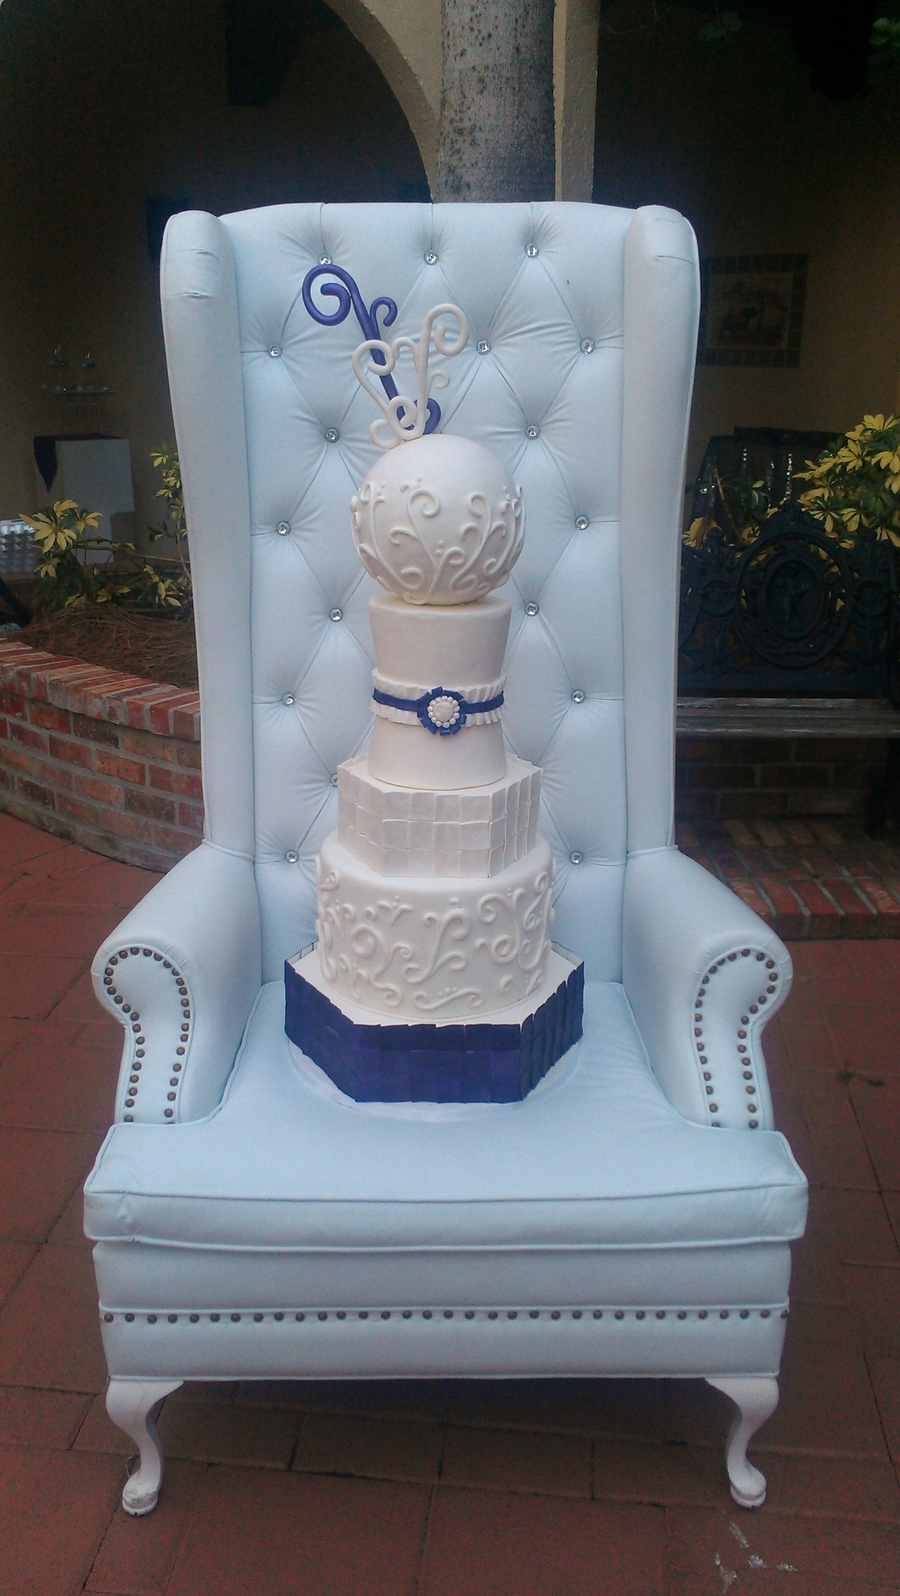 Modern Baroque Wedding Cake on Cake Central